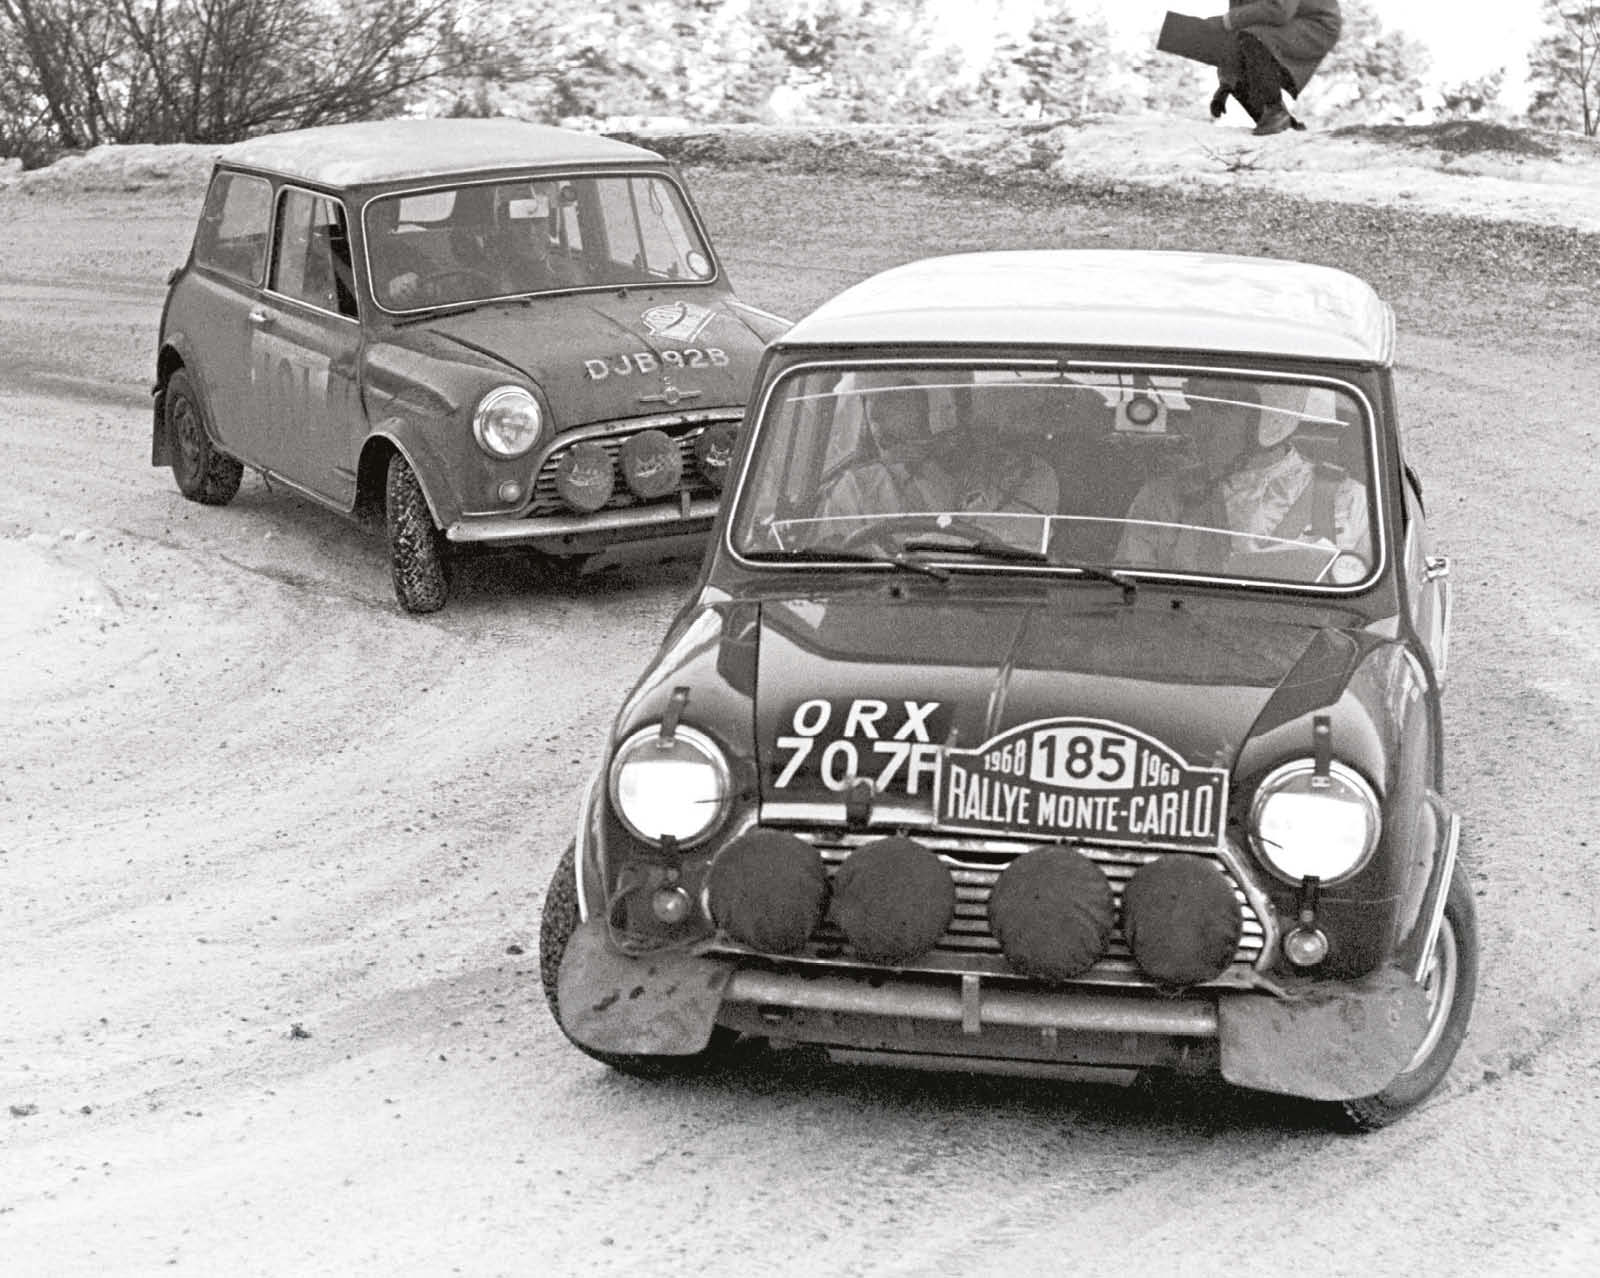 Tony Fall and Mike Wood took their Mini to fourth in the 1968 Monte